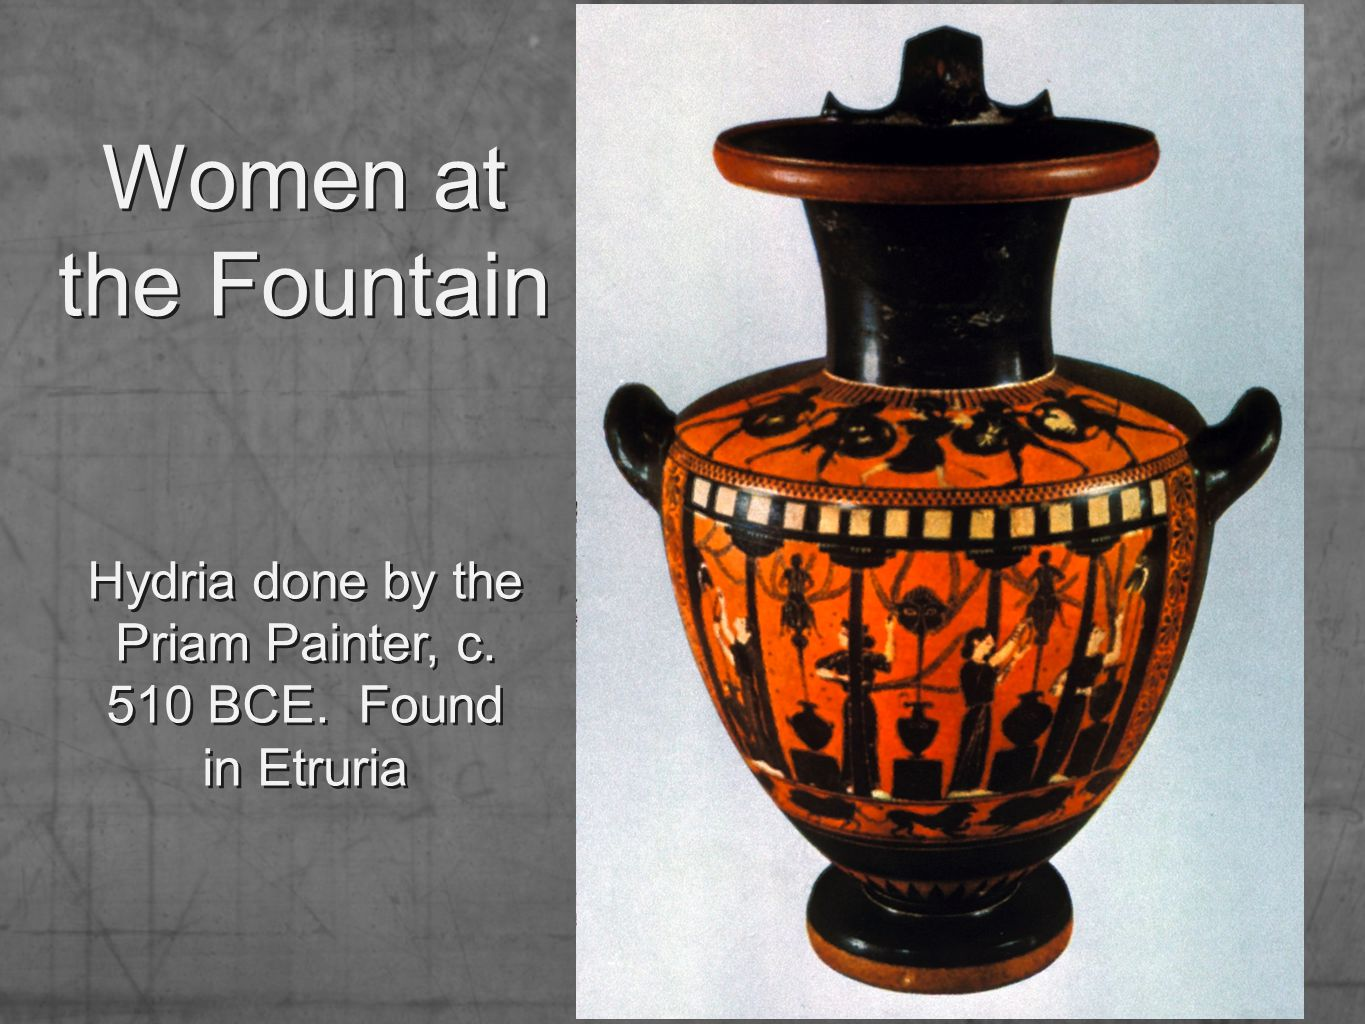 Women at the Fountain Hydria done by the Priam Painter, c. 510 BCE. Found in Etruria